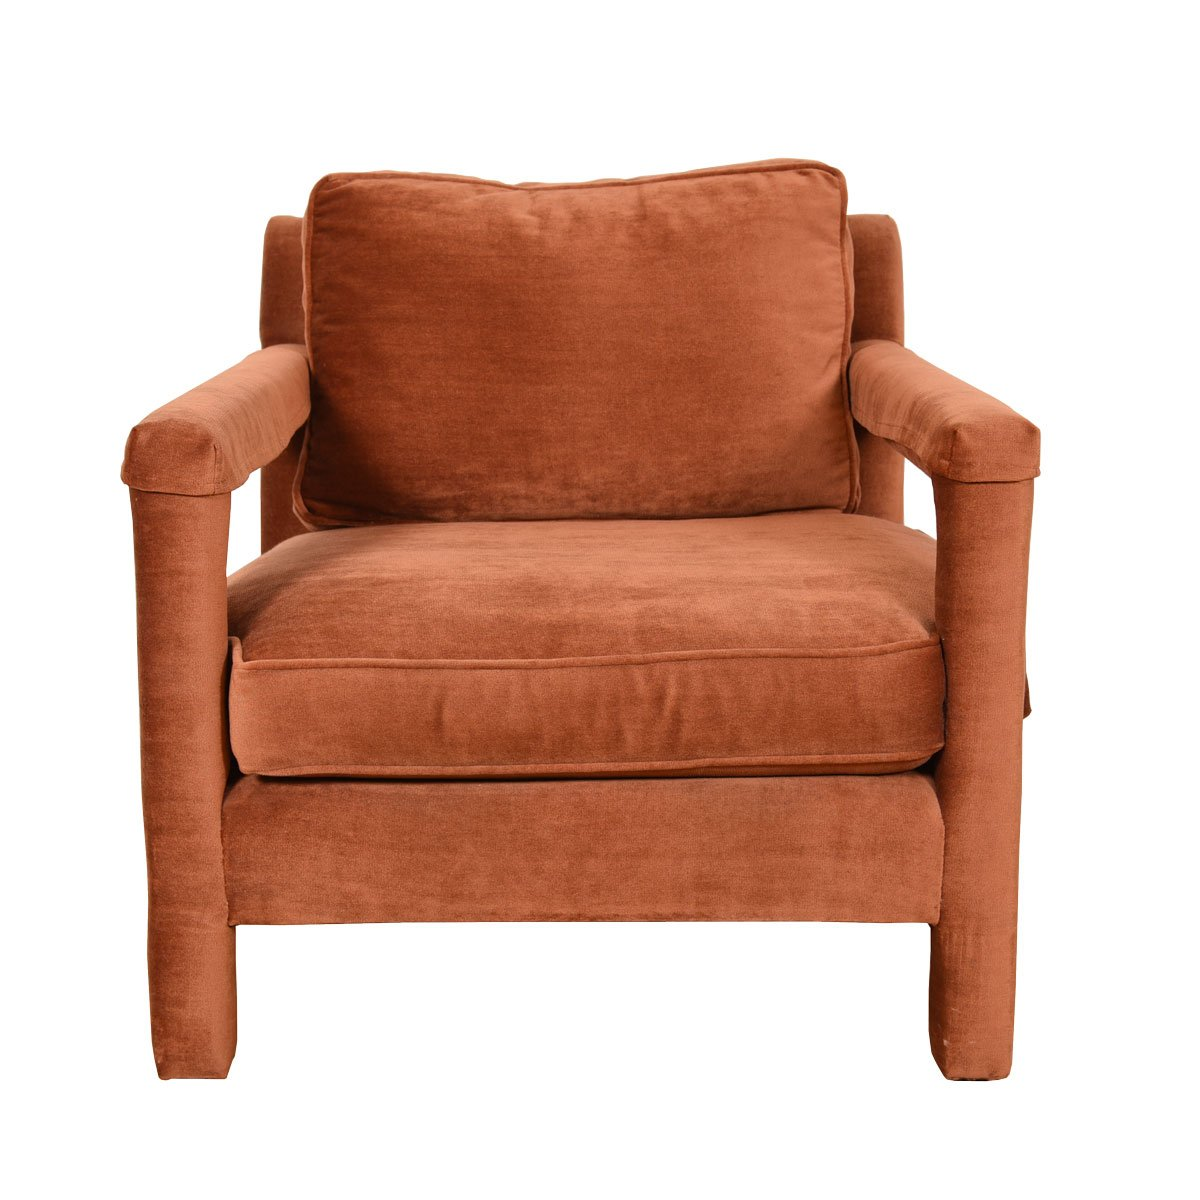 Copper Crushed Velvet Upholstered Club Chair